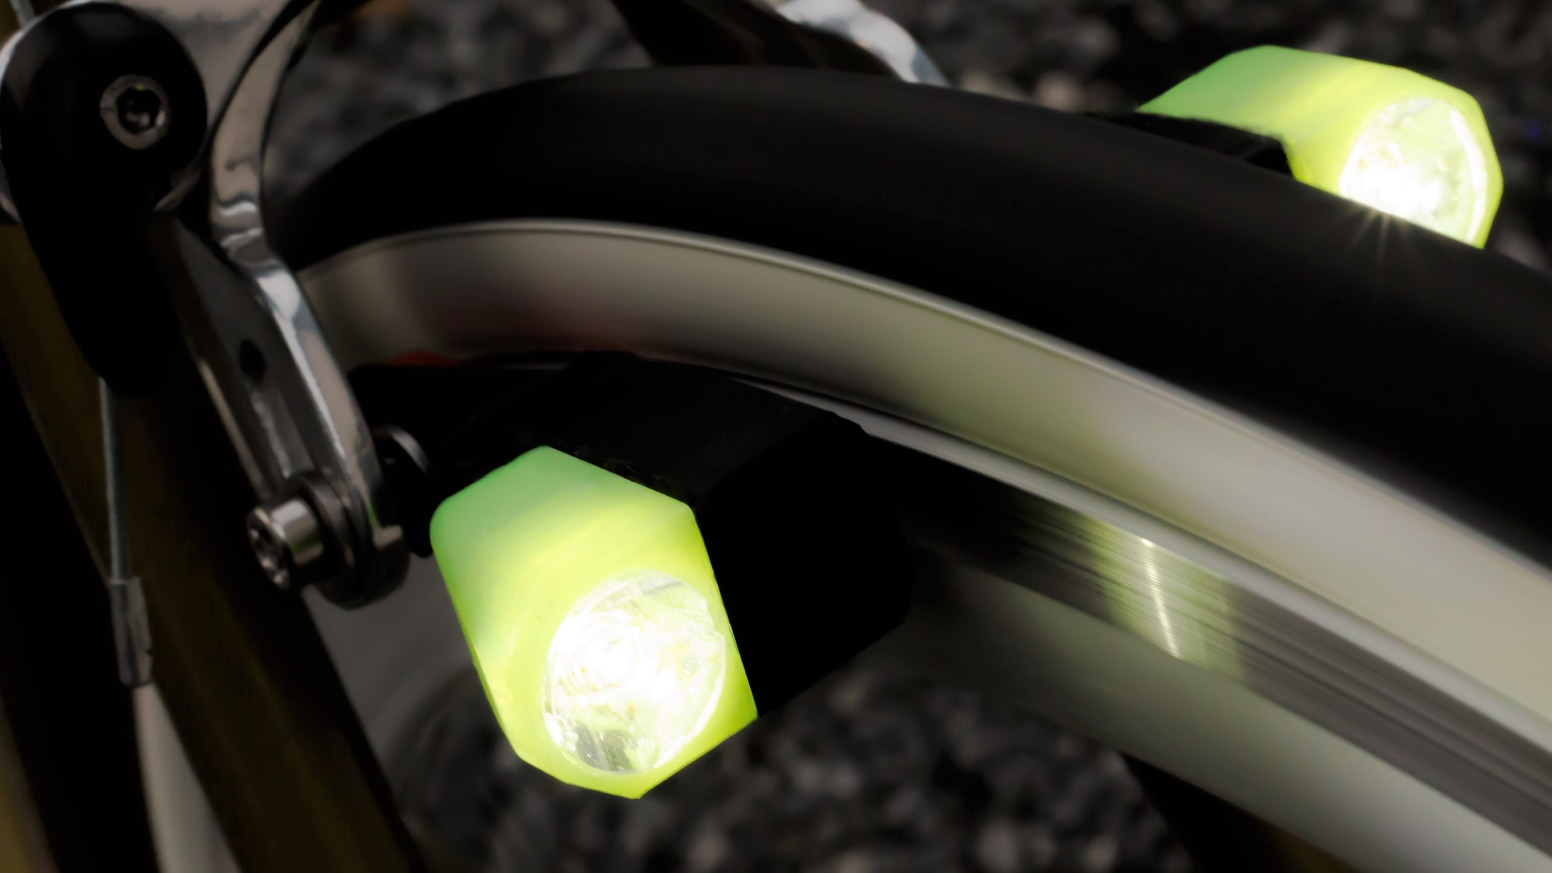 Bicycle lights in brake shoes powered by eddy current generators: no mechanical friction, cables or wheel magnets. With newest Cree LED